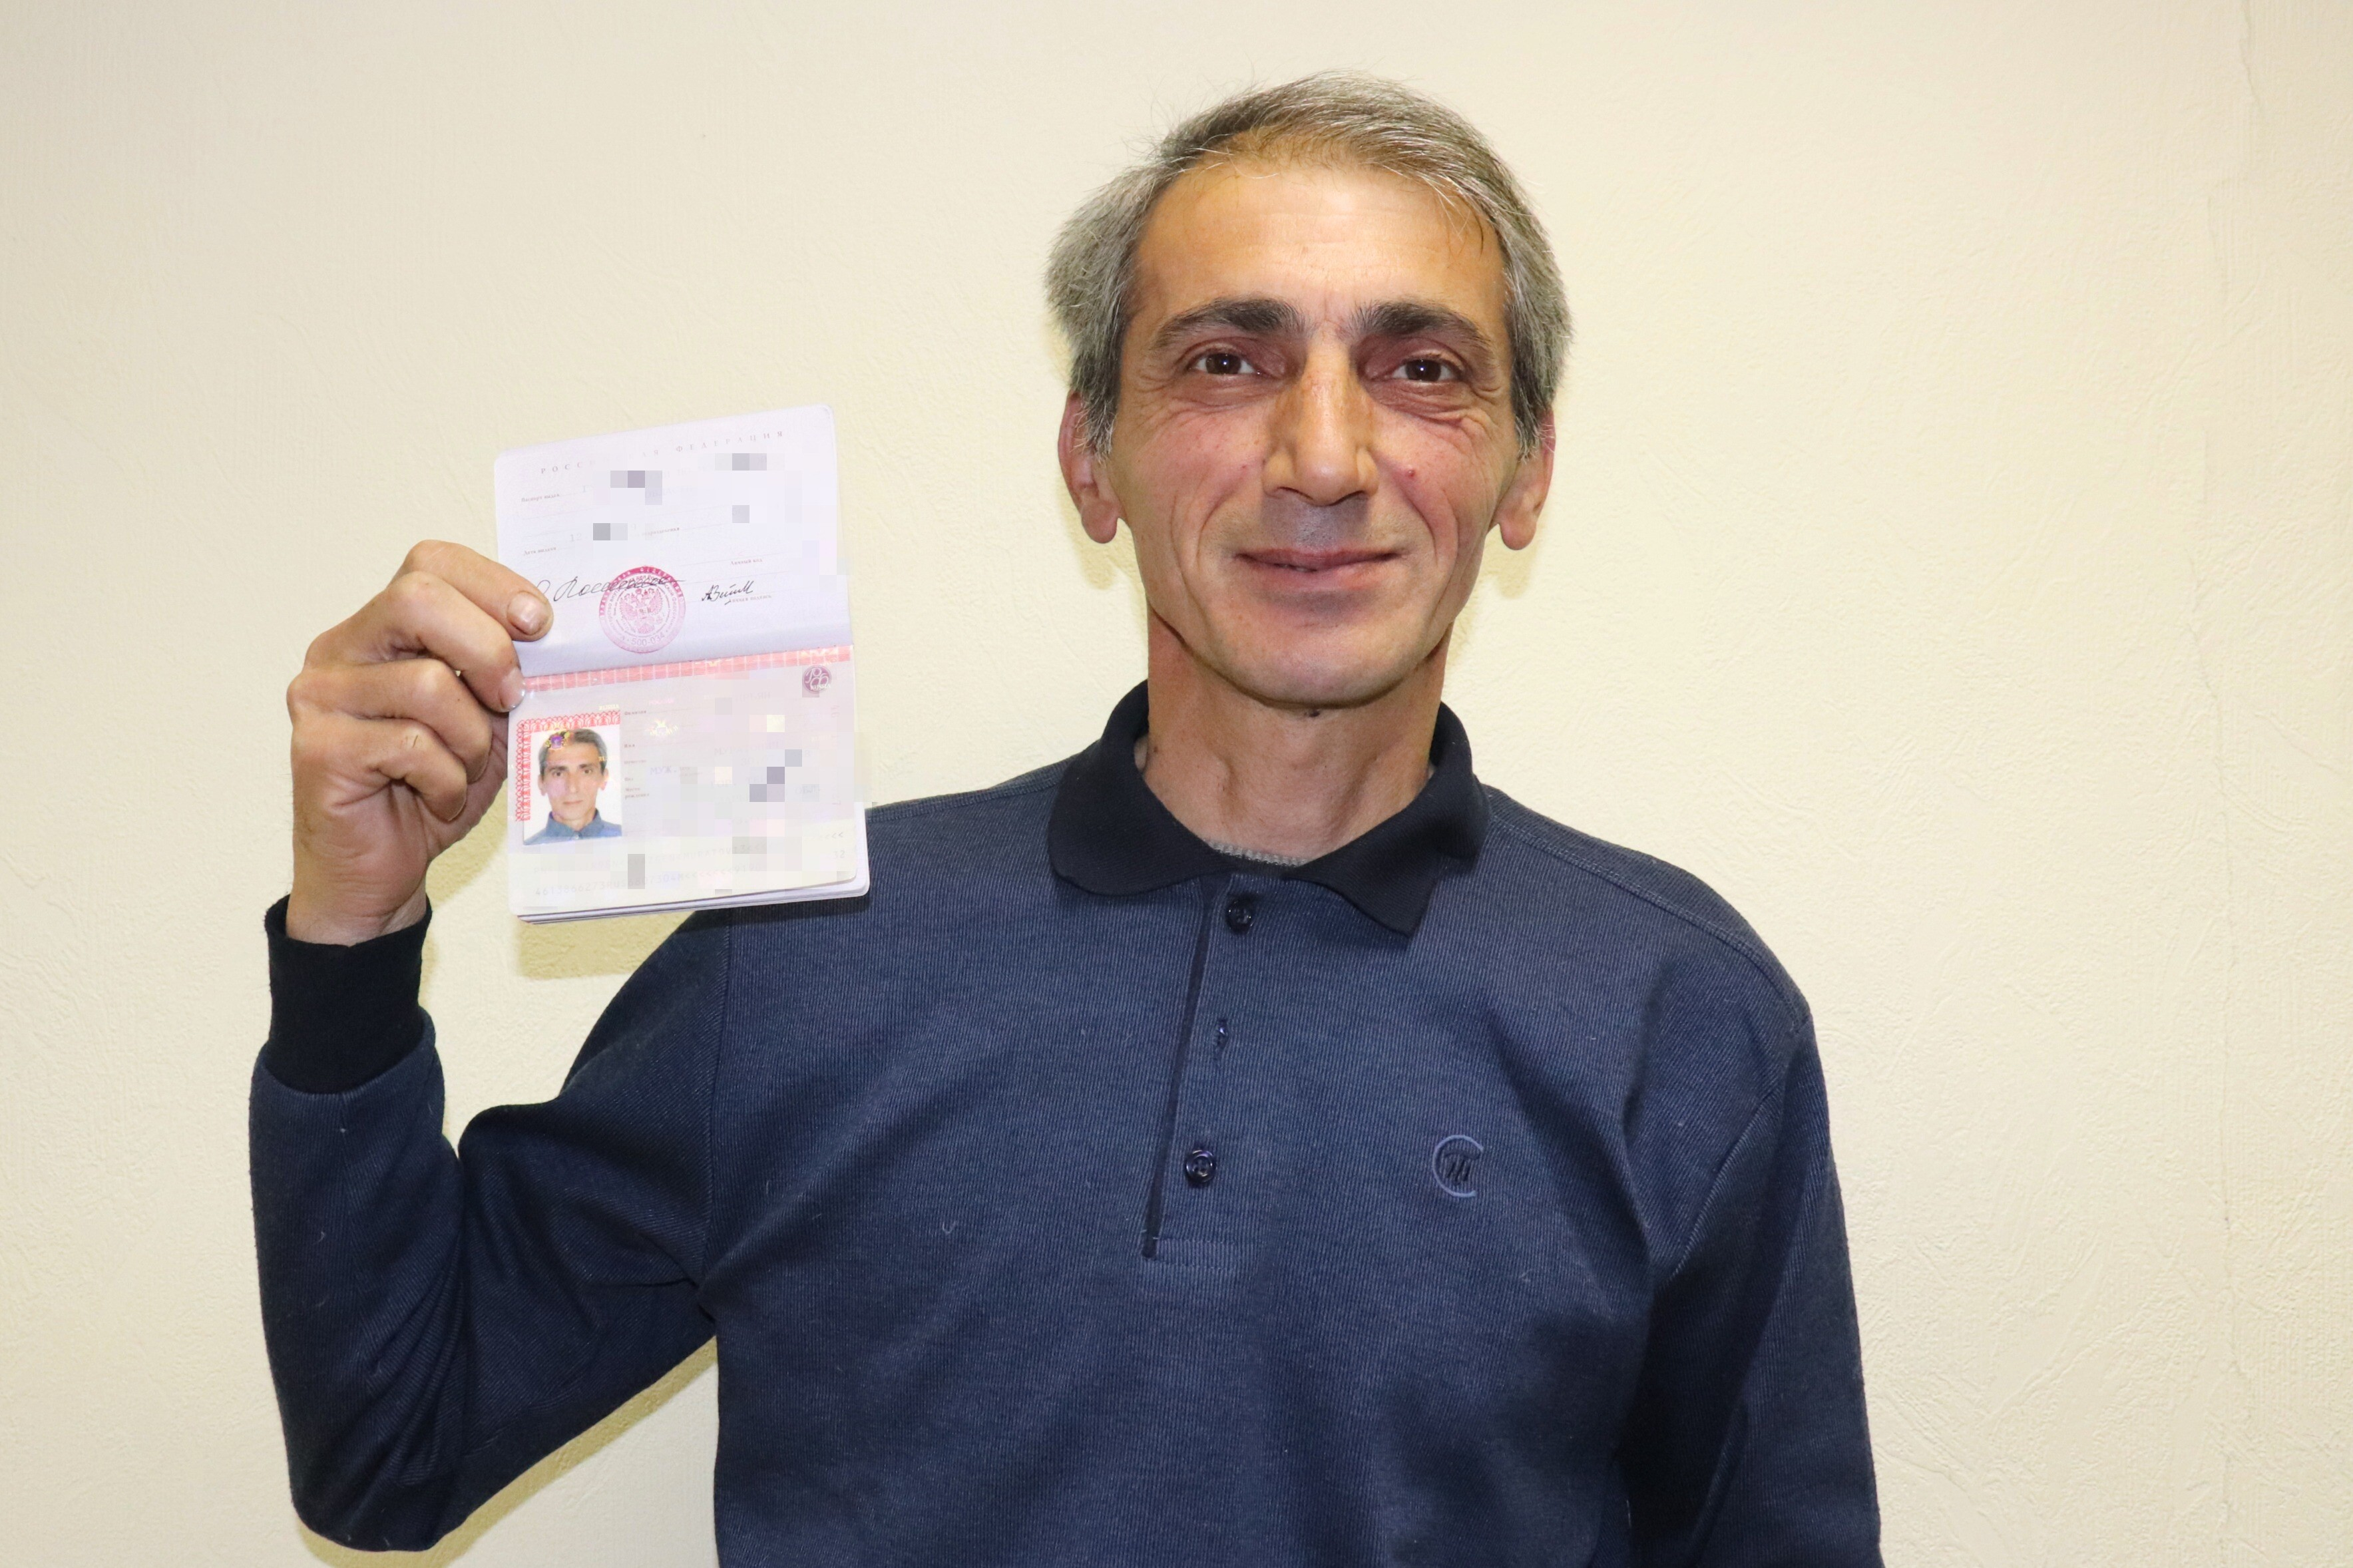 «I FELT ASHAMED THAT MY CHILD HAD AN ID BUT HER DAD HAD NO DOCUMENTS""